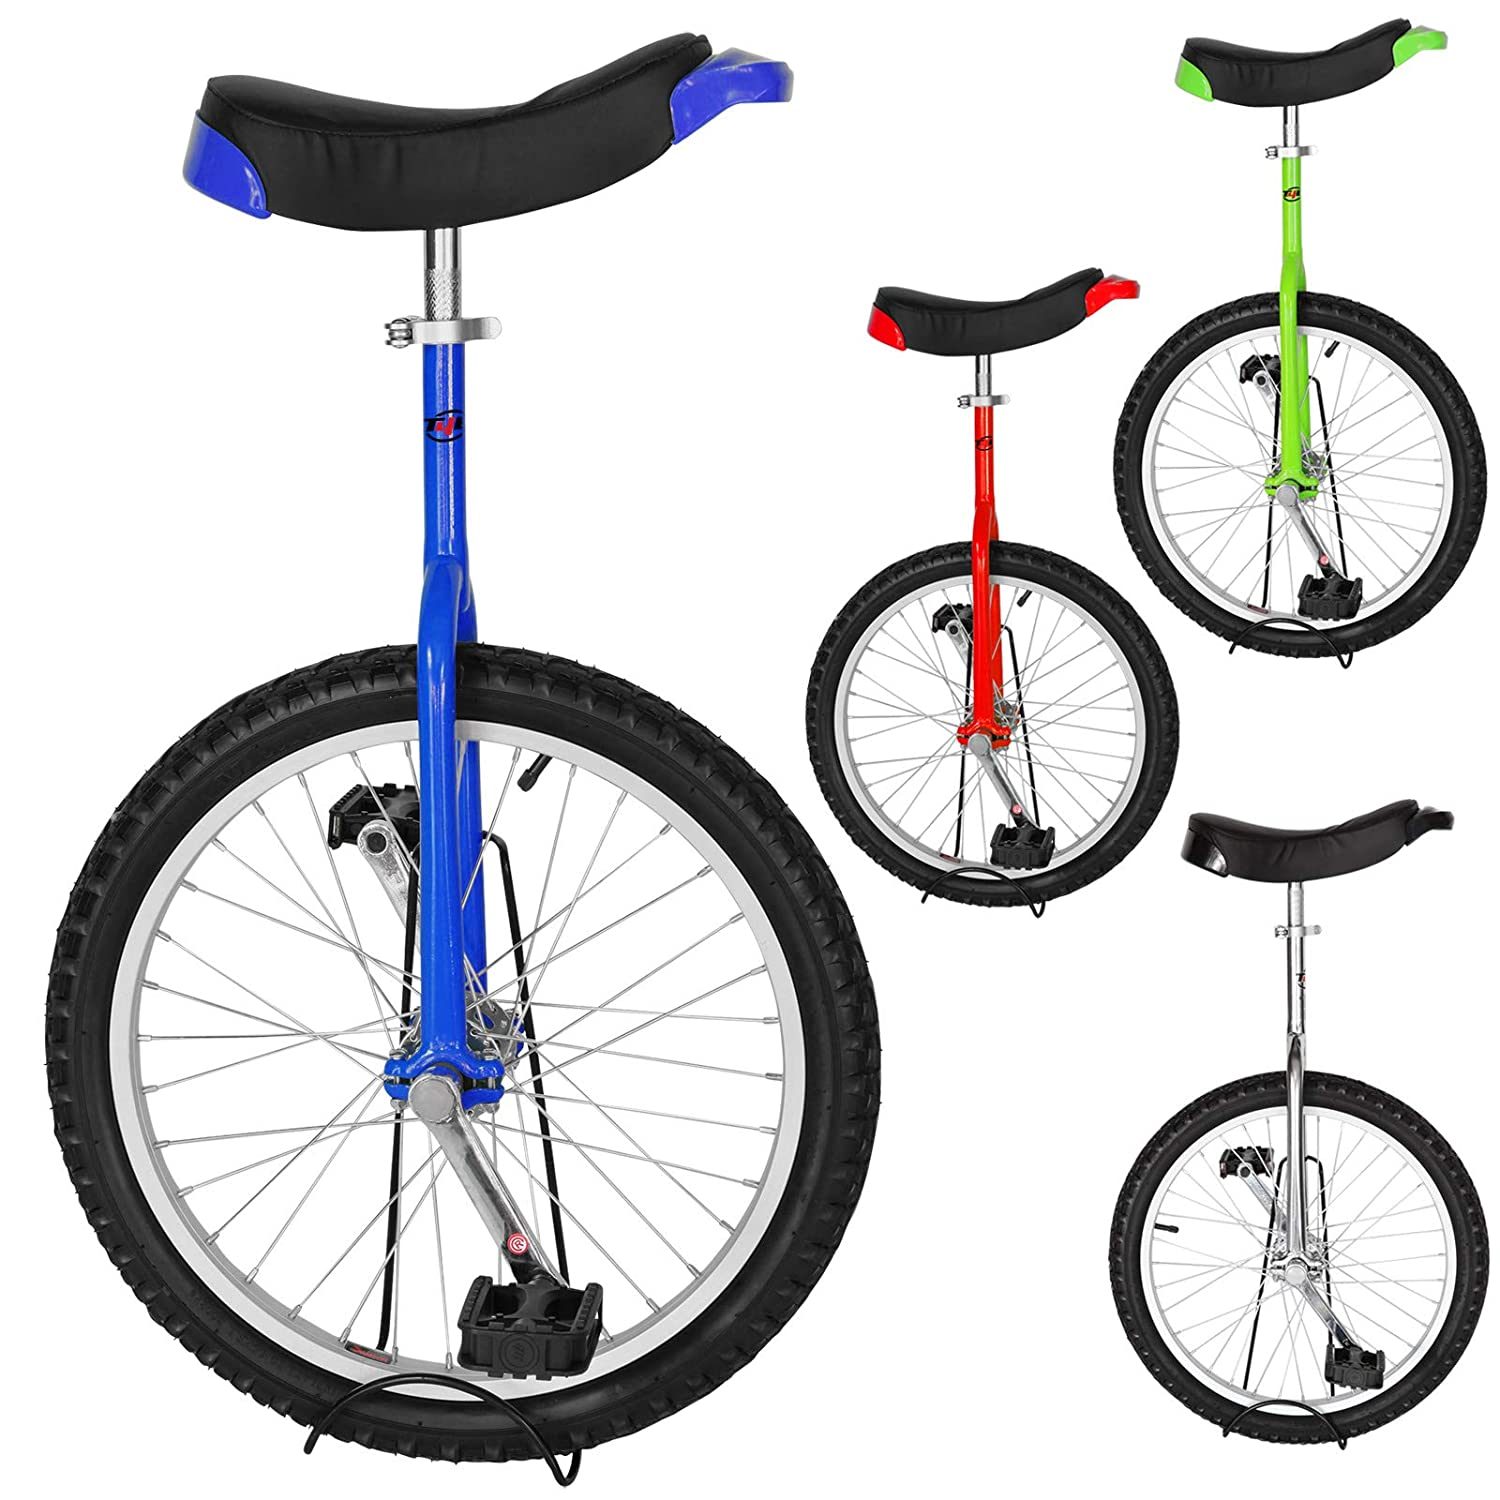 "20/"" Wheel Skid Proof Butyl Tire Unicycle Outdoor Cycling Chrome Frame Exercise S"